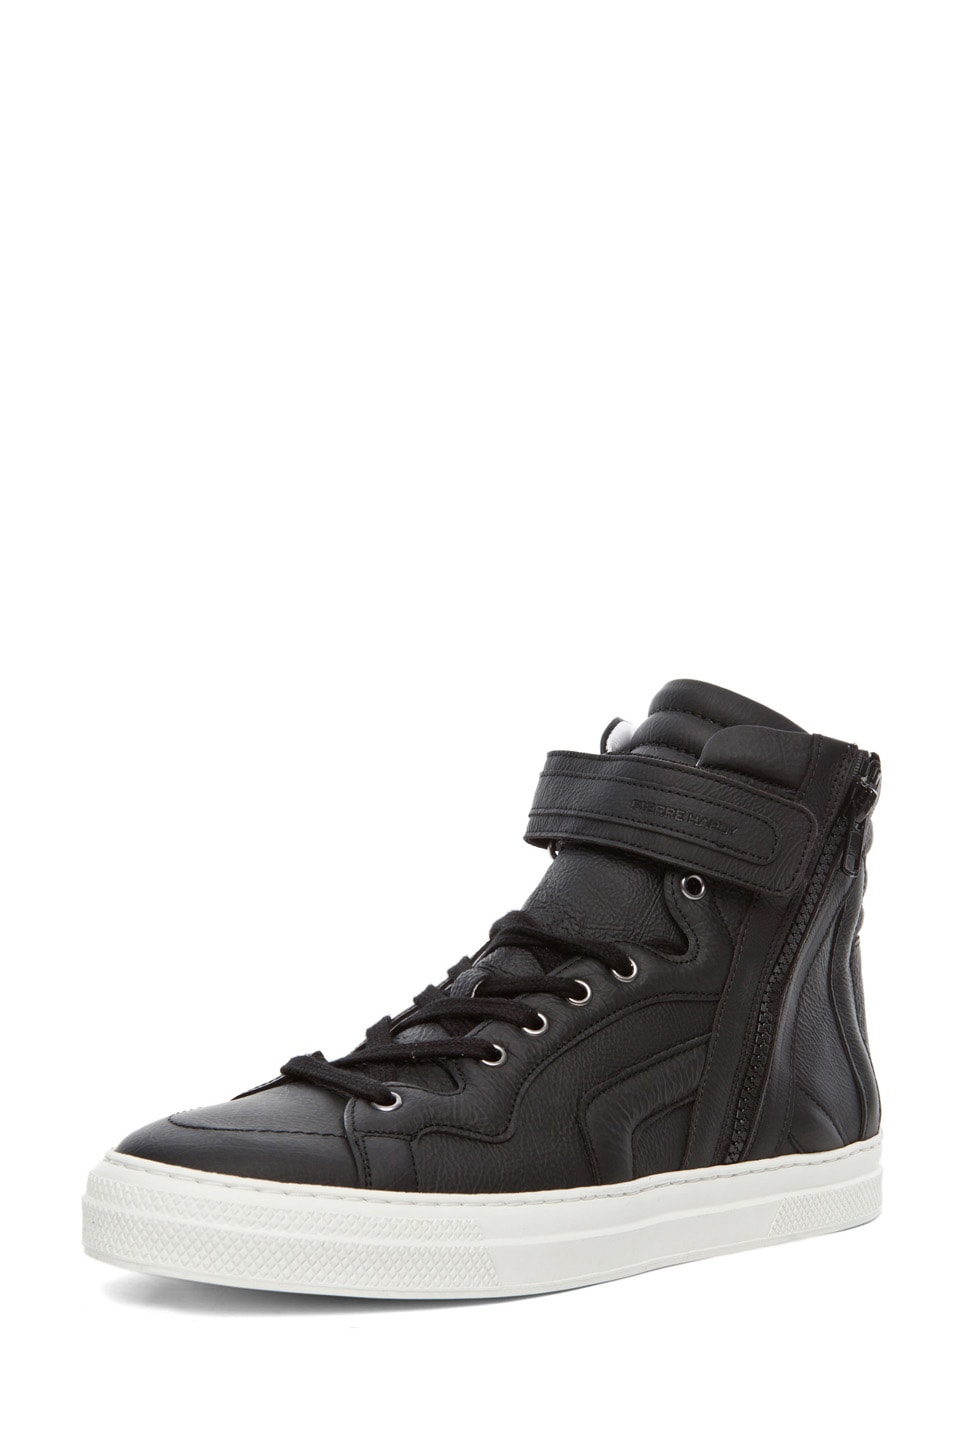 Image 2 of Pierre Hardy Paper Calf Hi Top Sneaker in Black